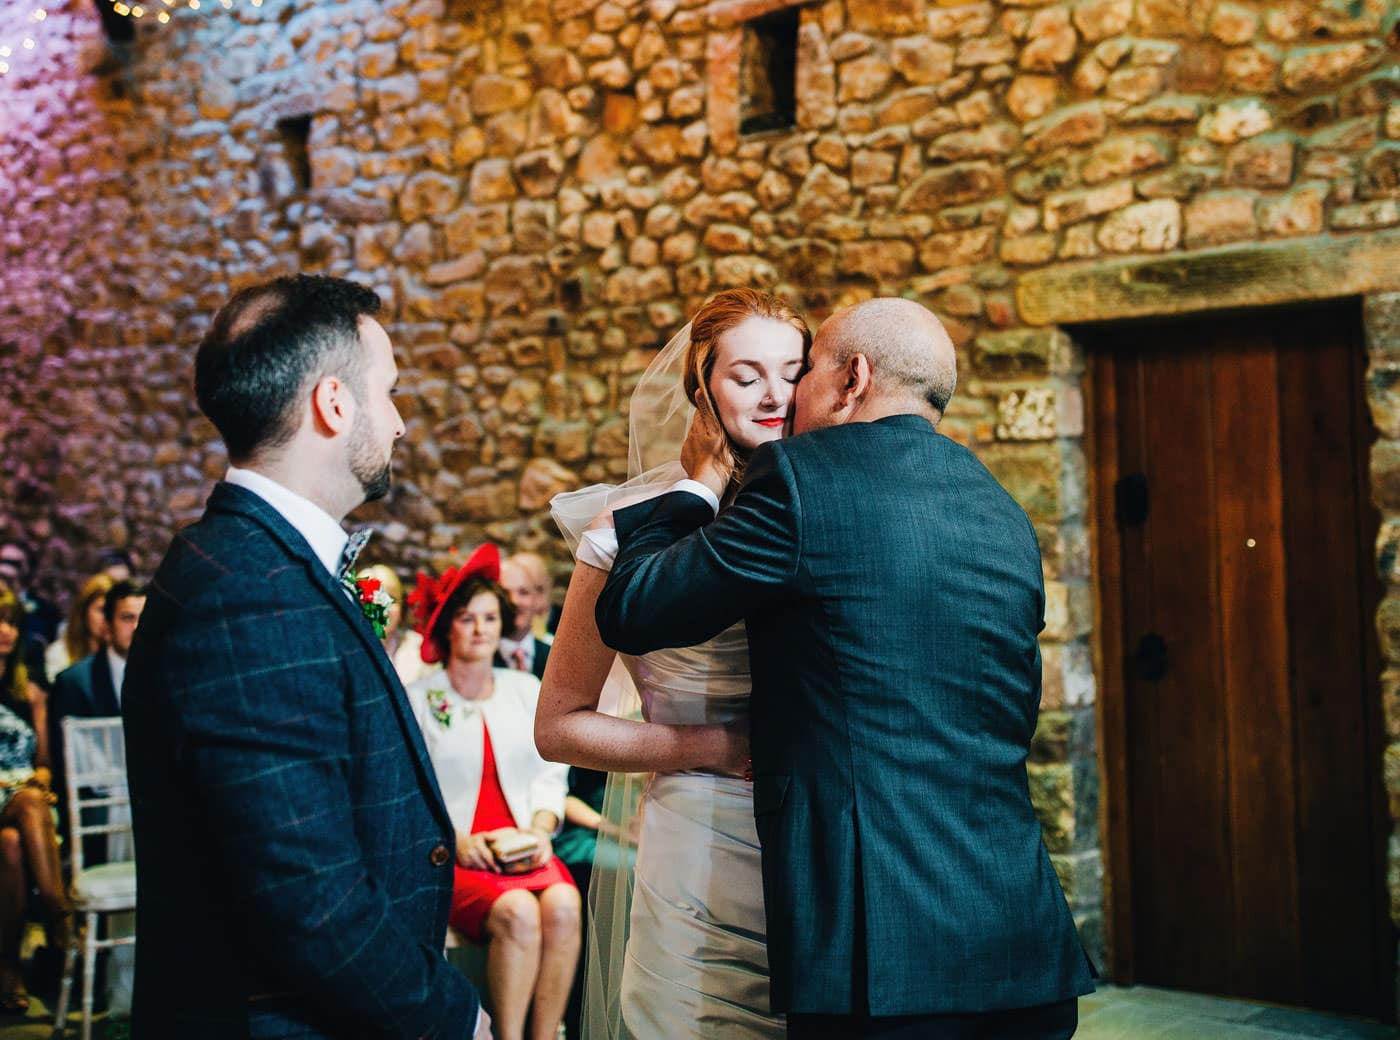 dad kisses bride - emotional wedding moments